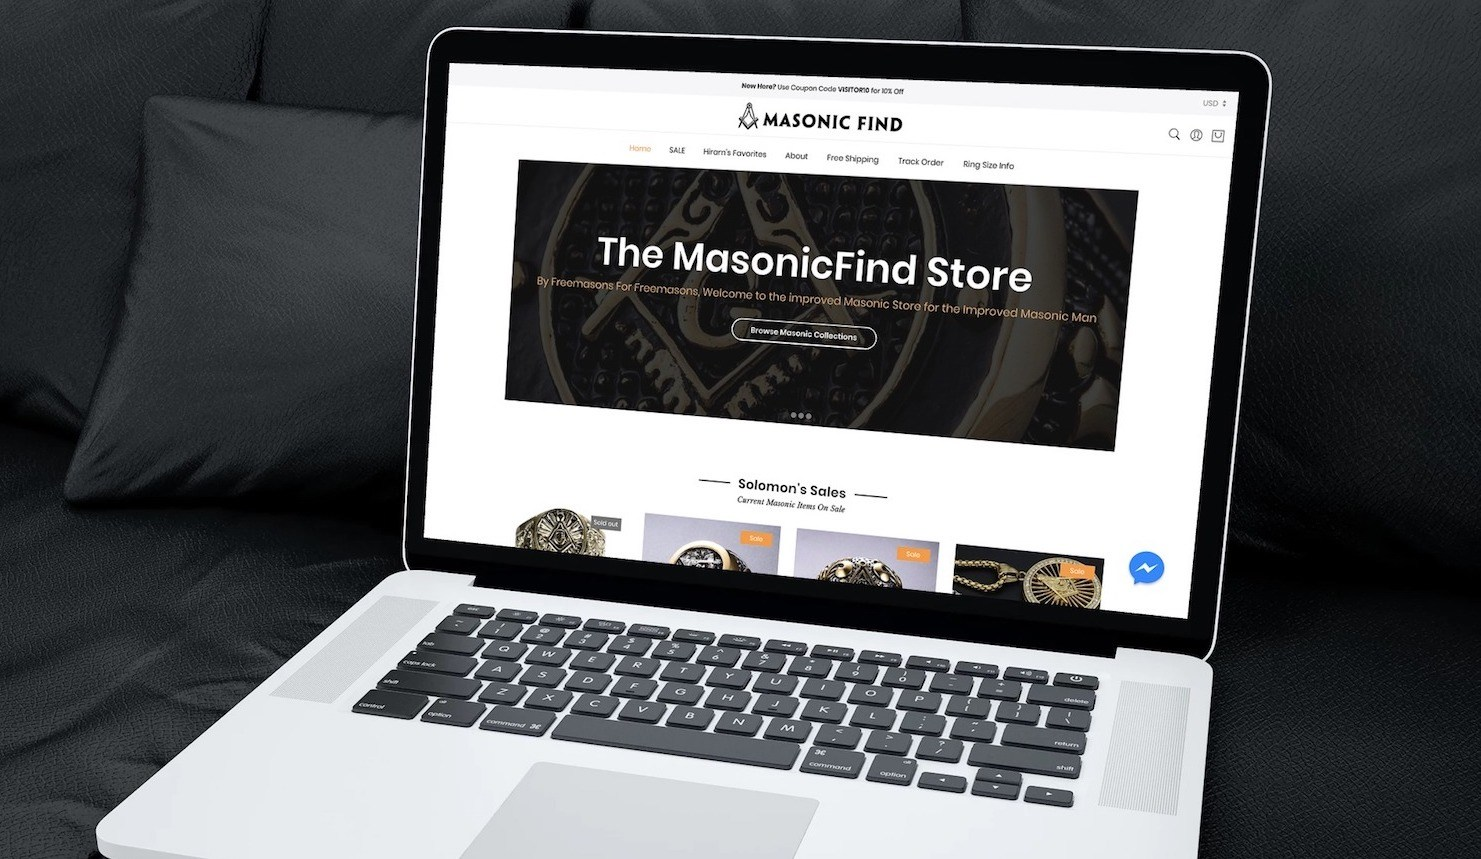 the masonic find store